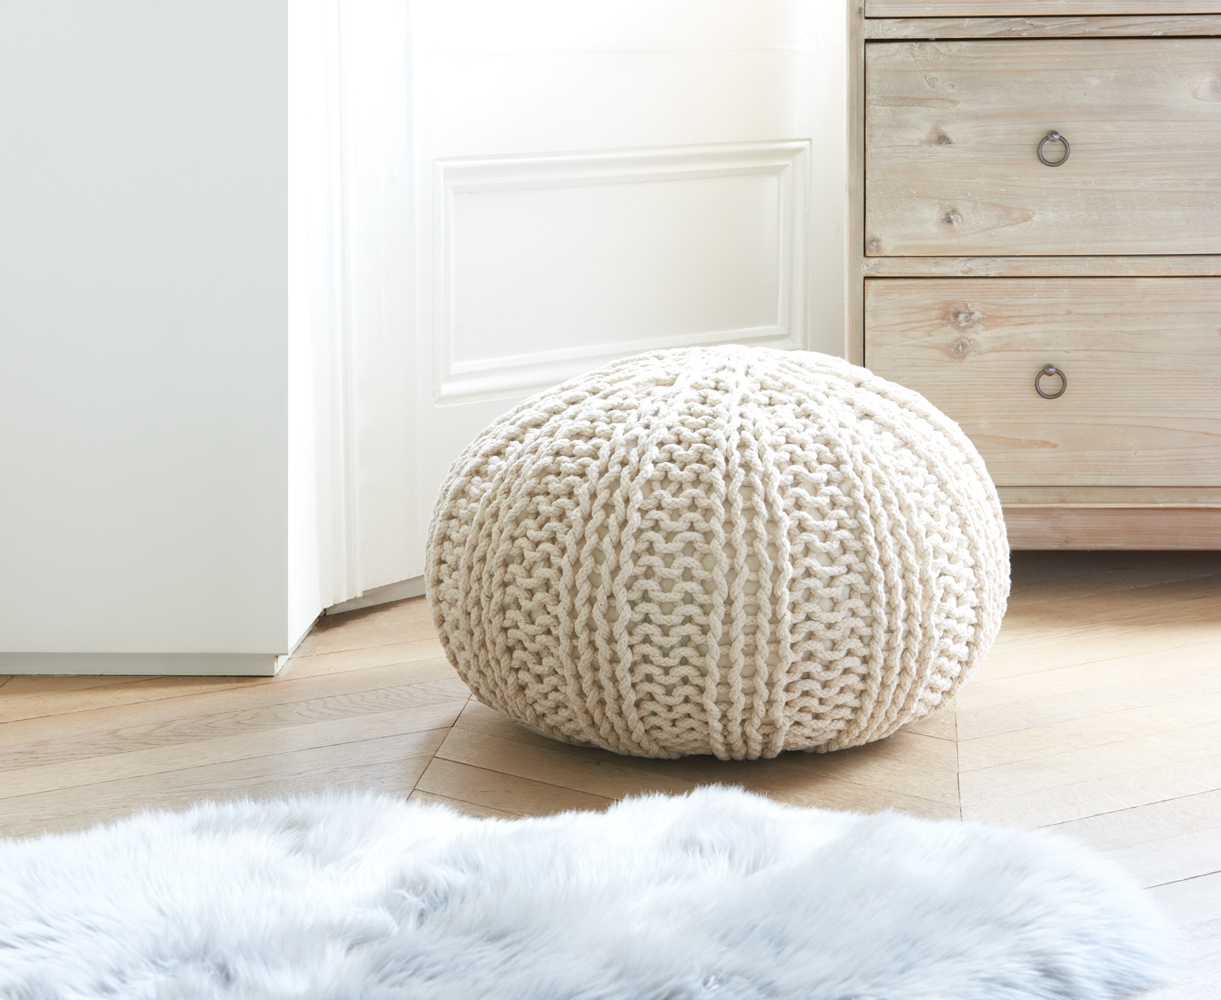 Hand Knitted Rope Pouffe Bug Loaf Intended For Small Footstools And Pouffes (View 12 of 15)